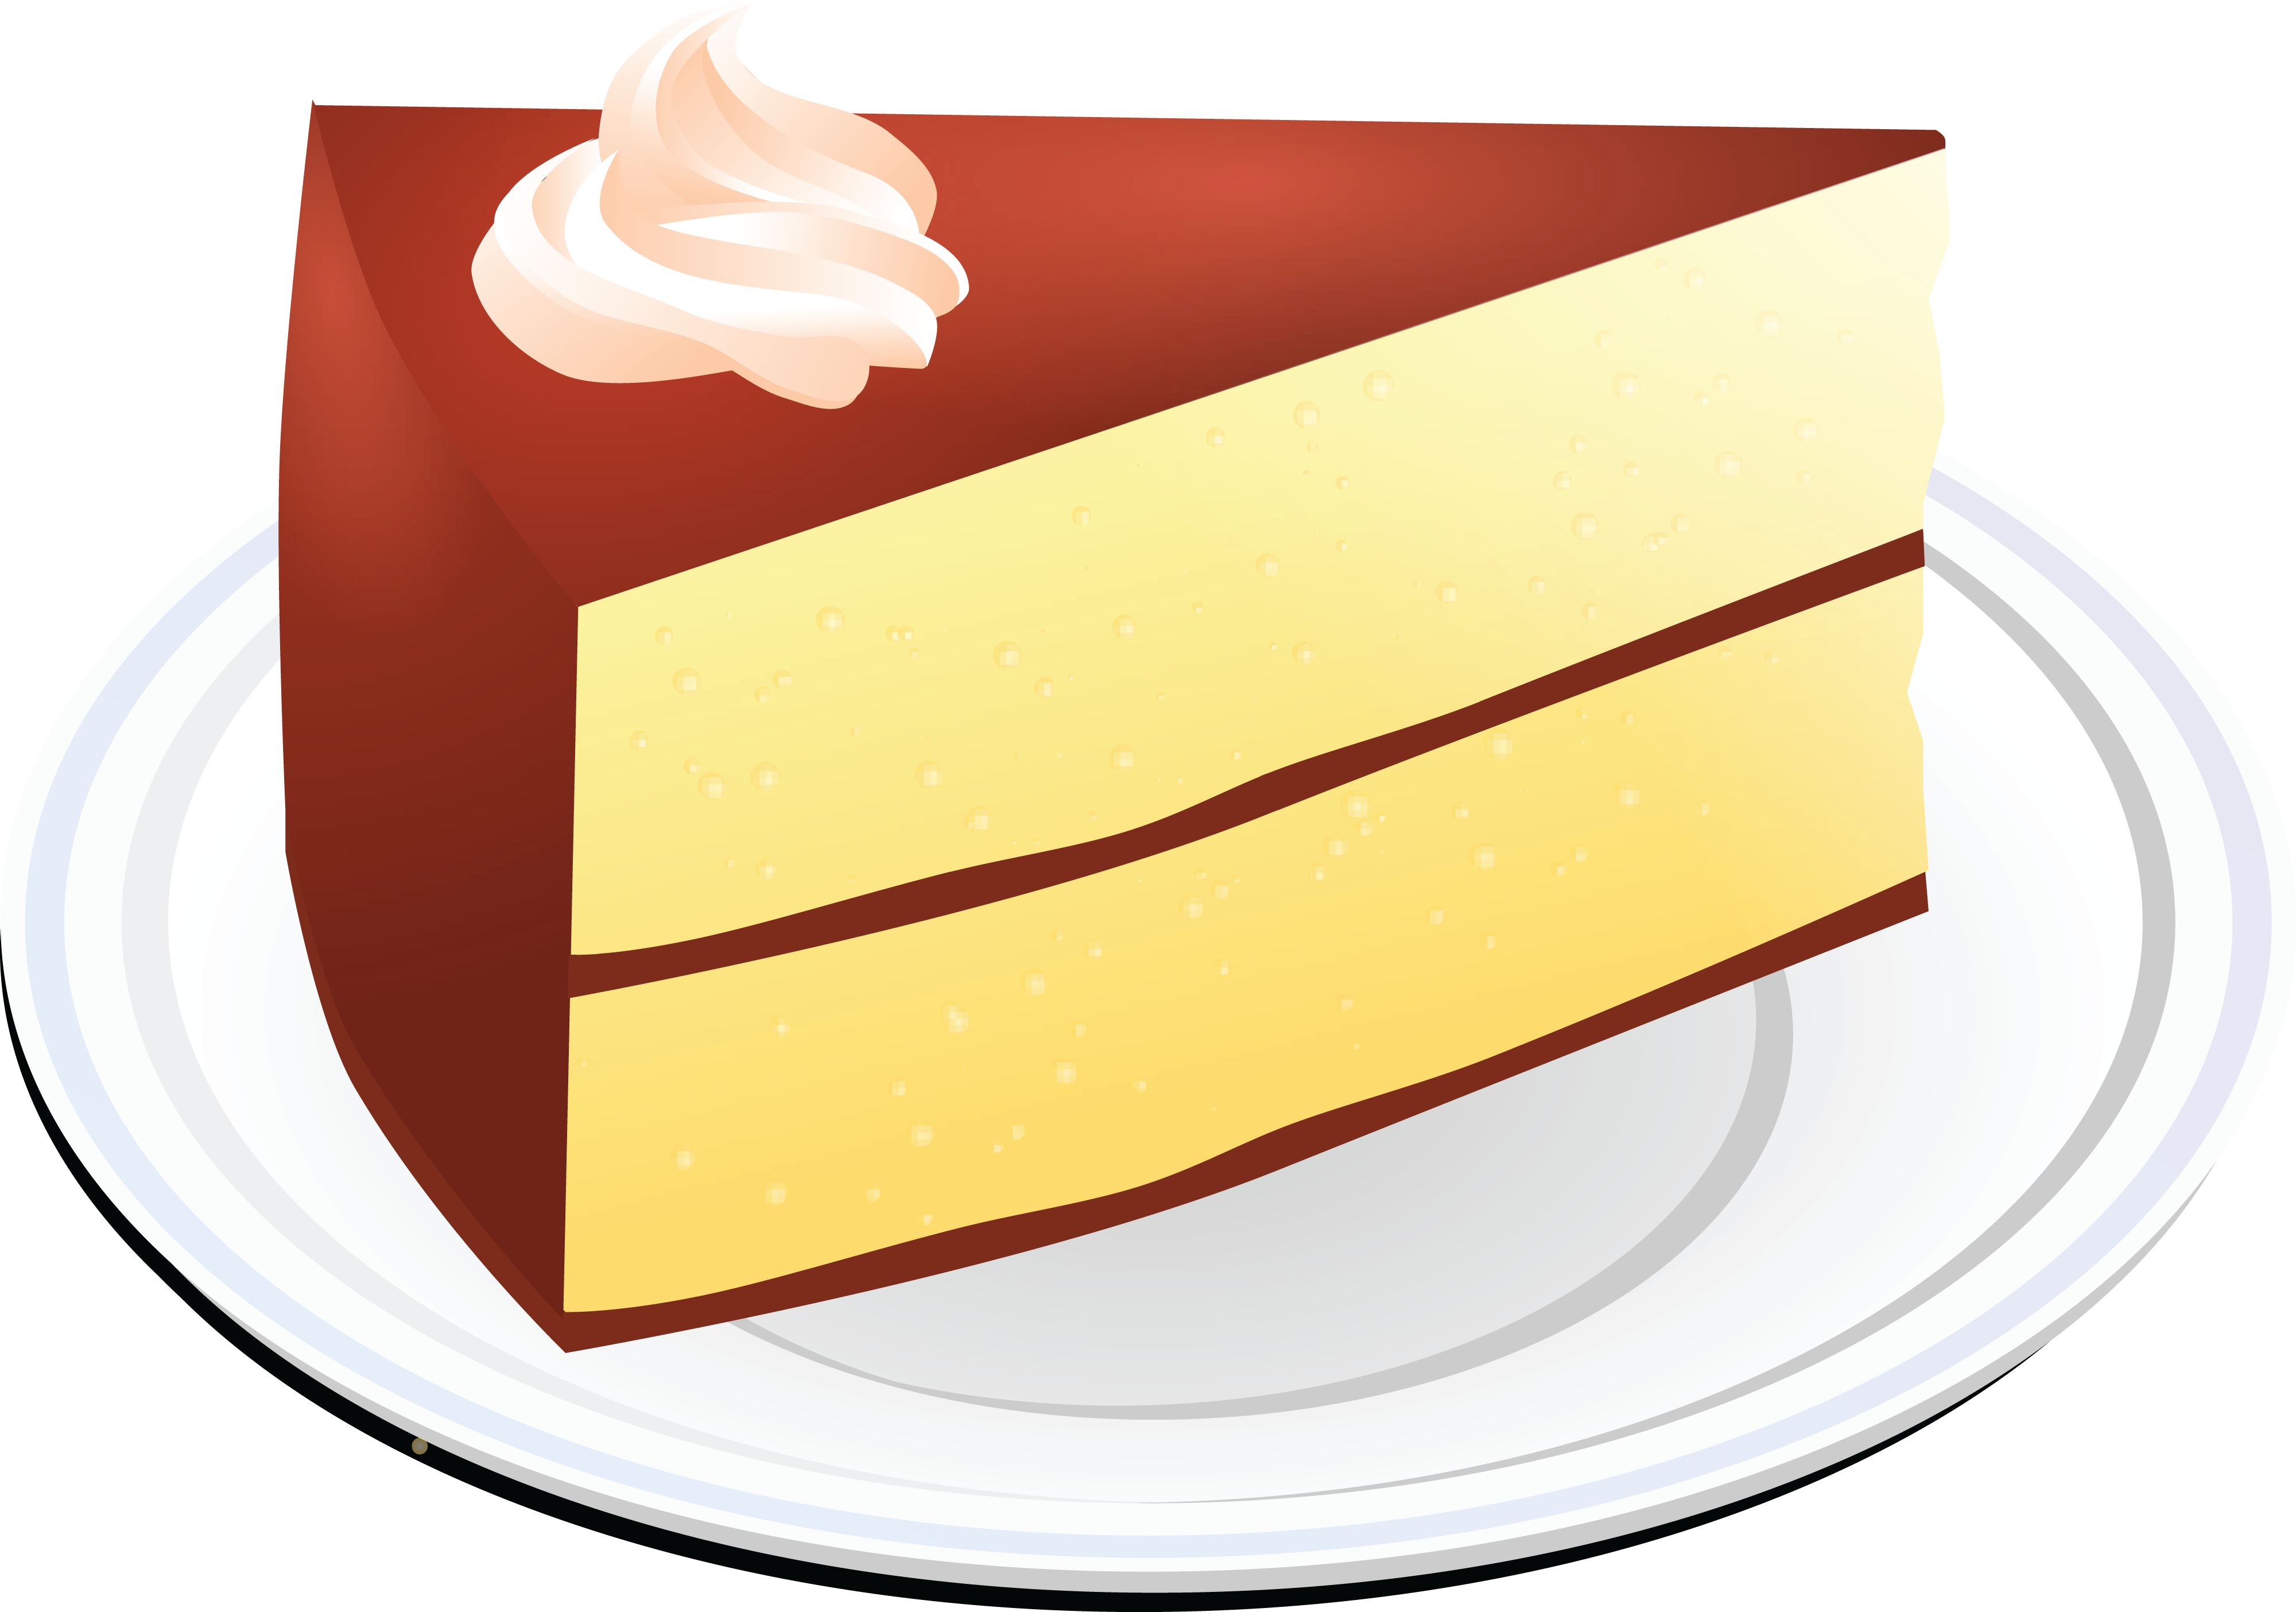 Clipart cake layer. Yellow graphics illustrations free